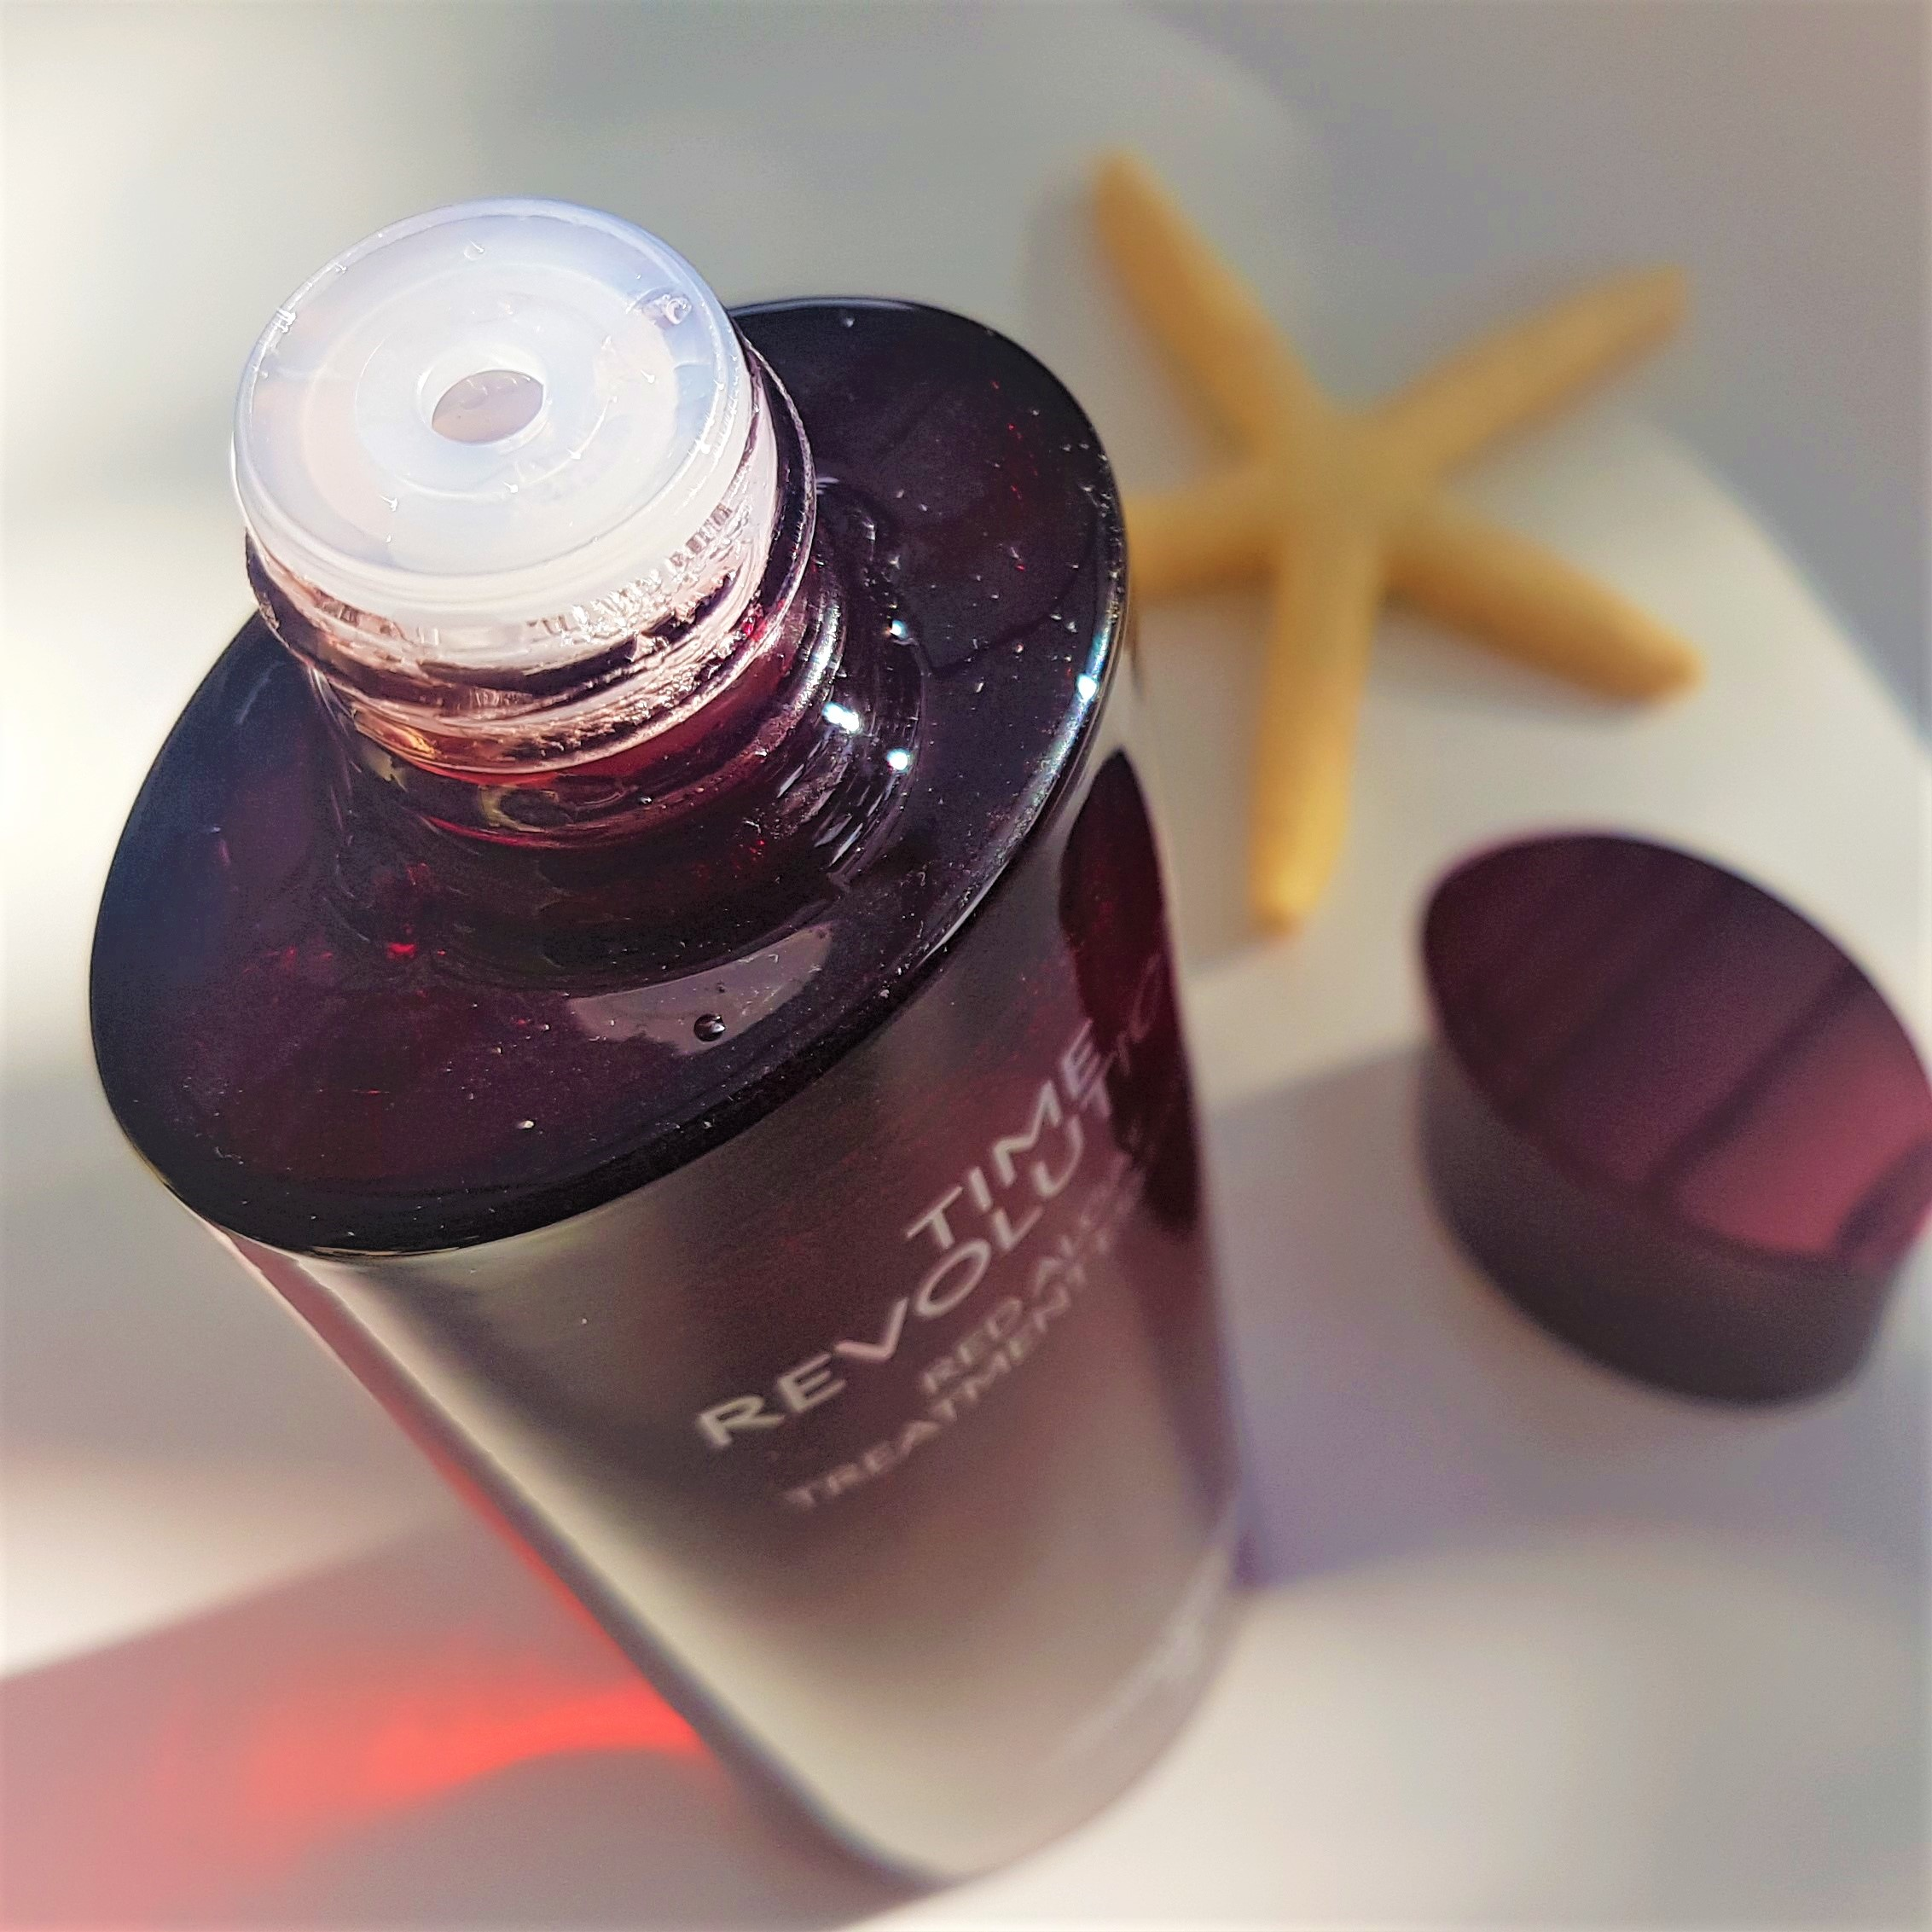 Missha Red Algae Treatment Essence Packaging